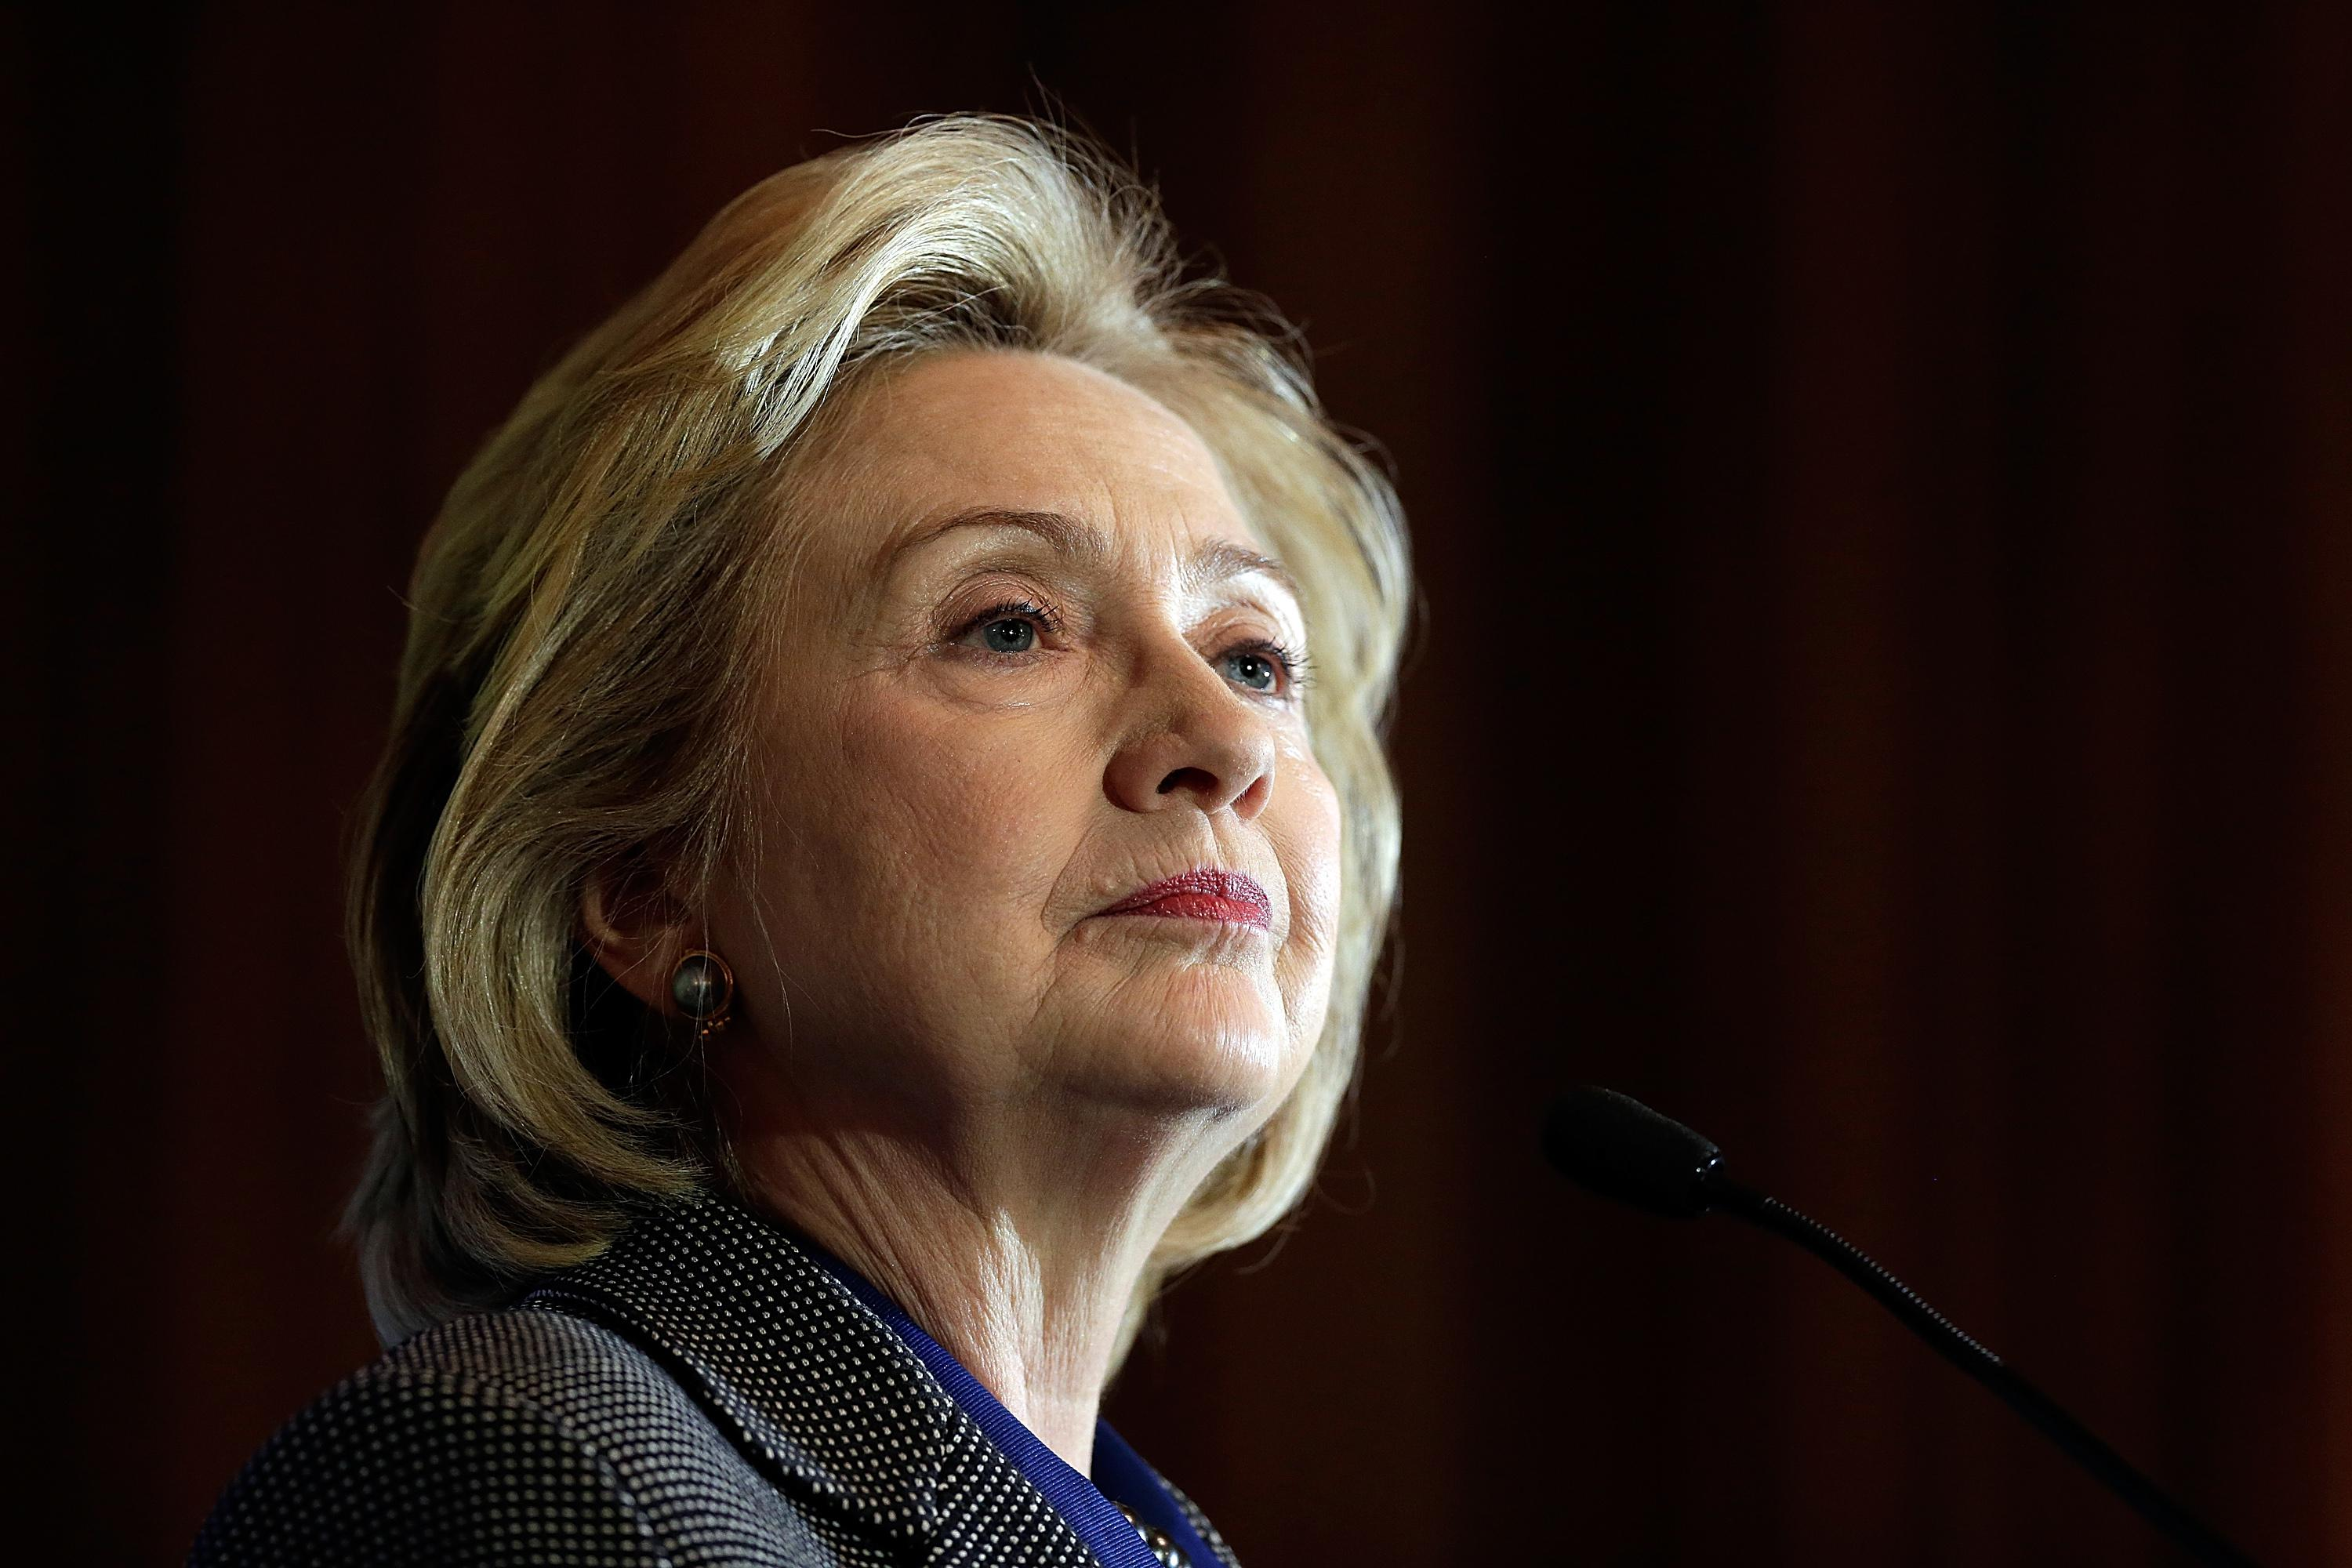 Trolling is the new black: Hillary Clinton and the Twitter news cycle.